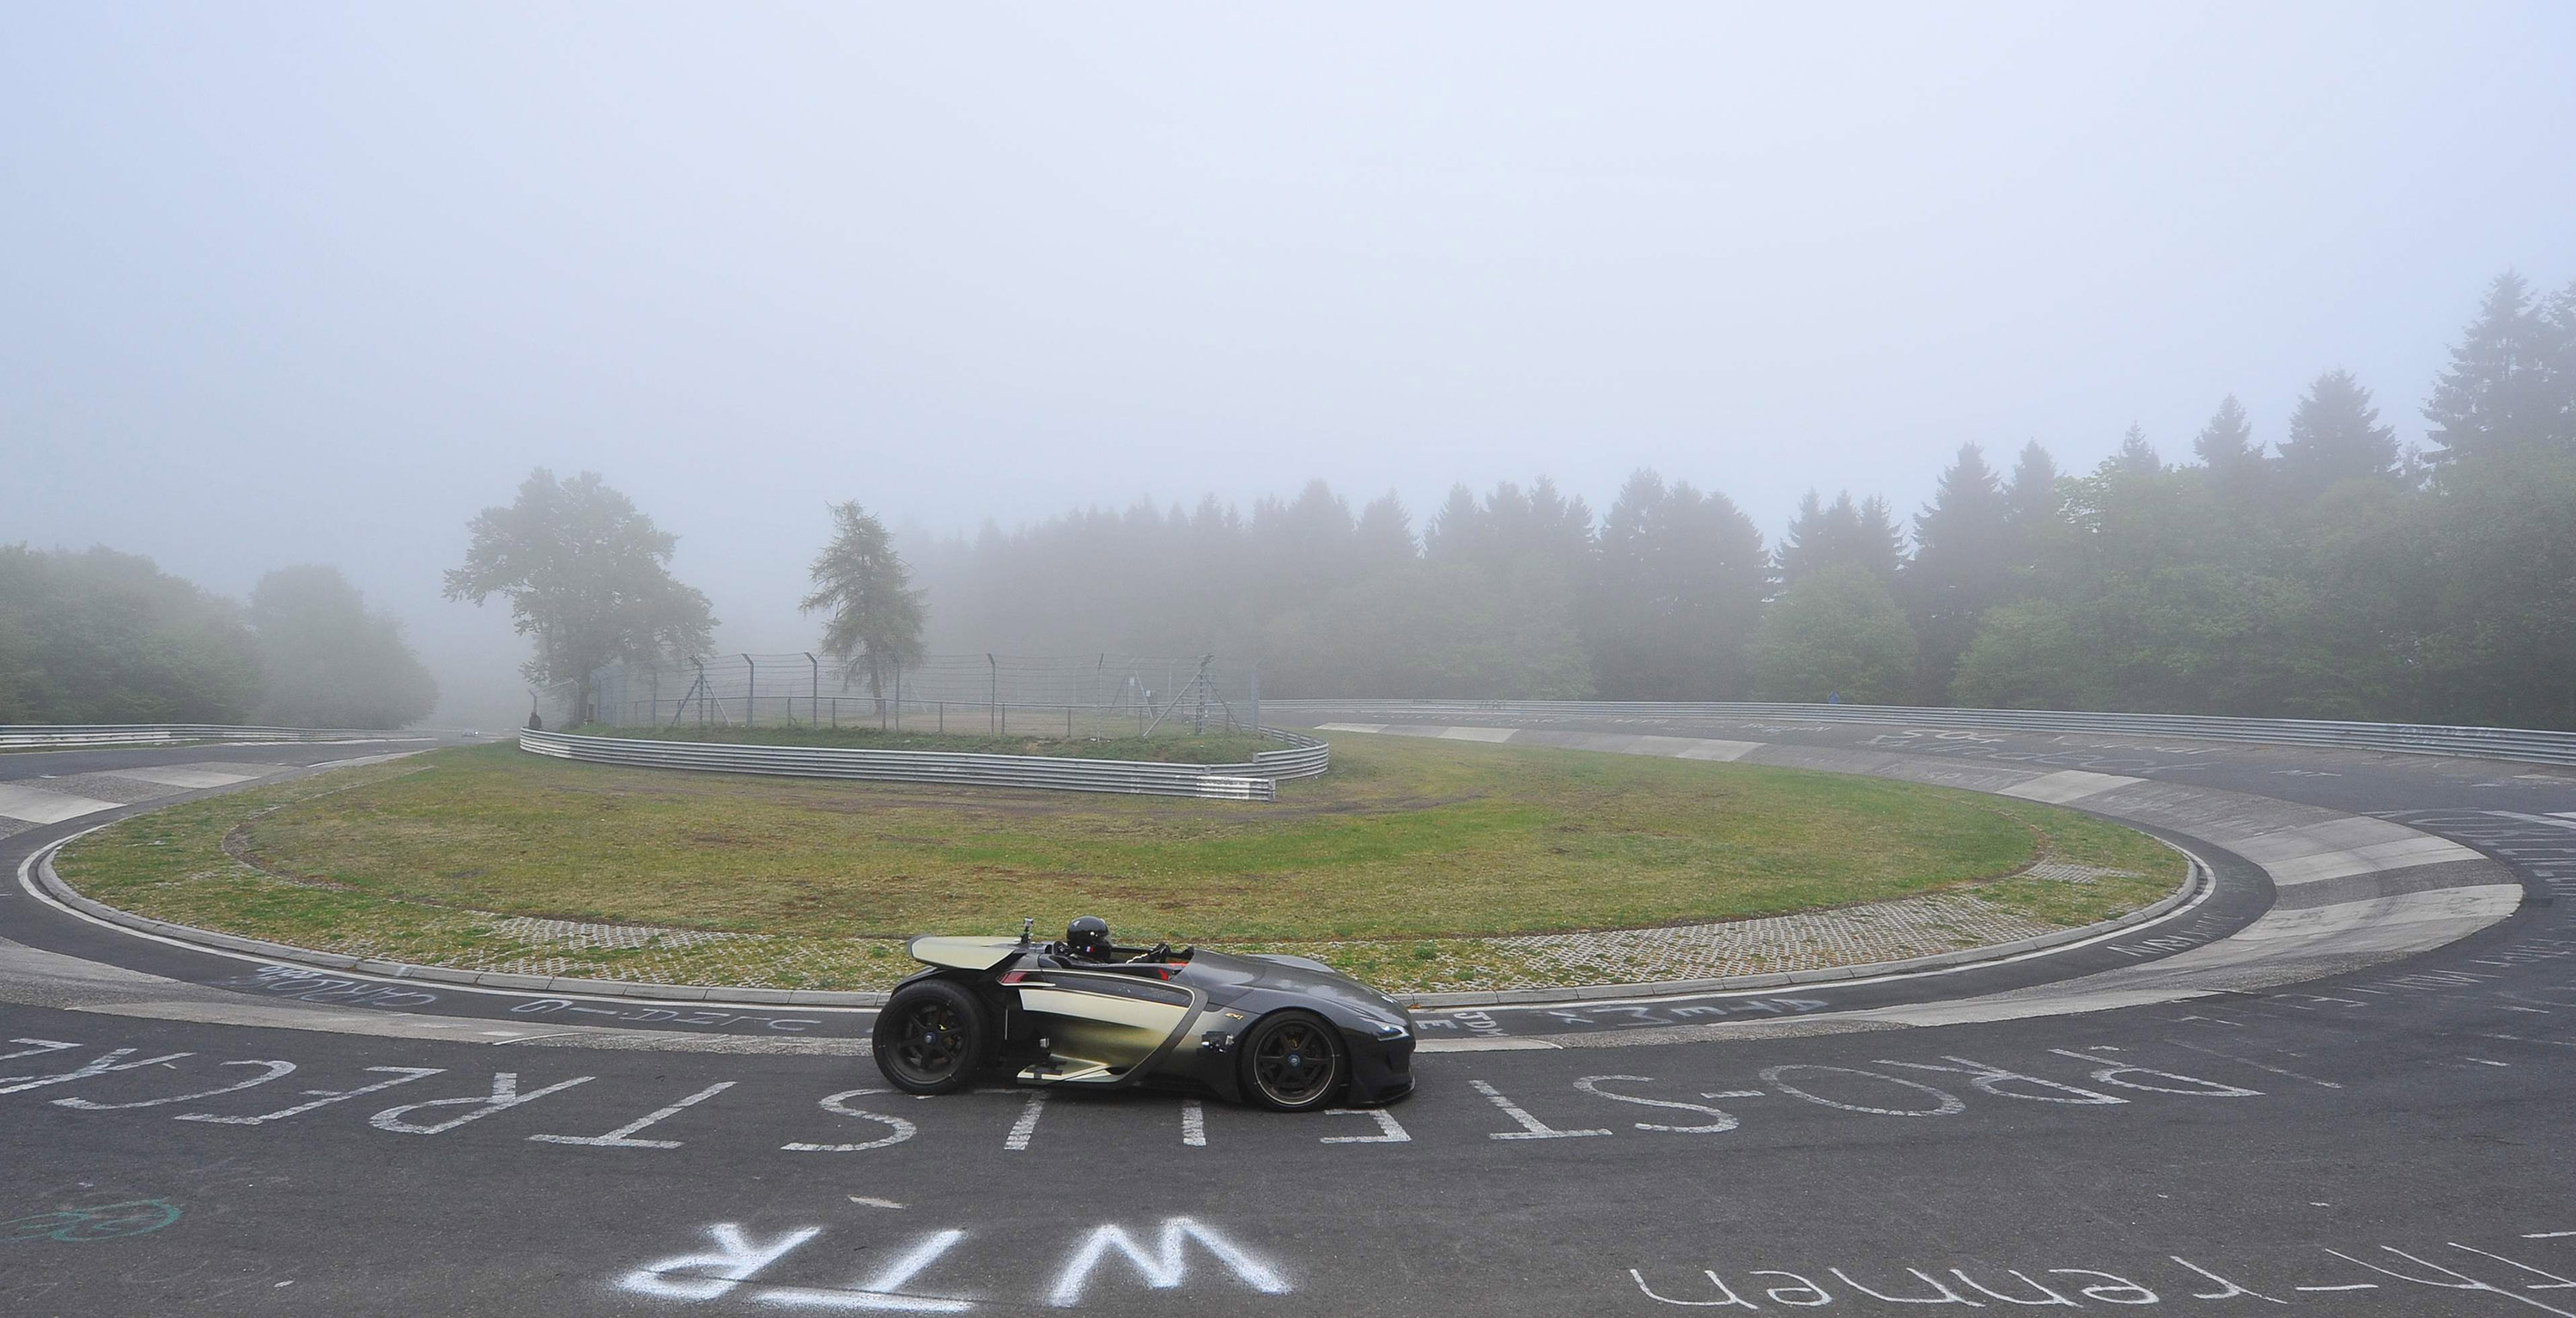 Peugeot Ex1 At The Nurburgring Nordschleife 3 Of